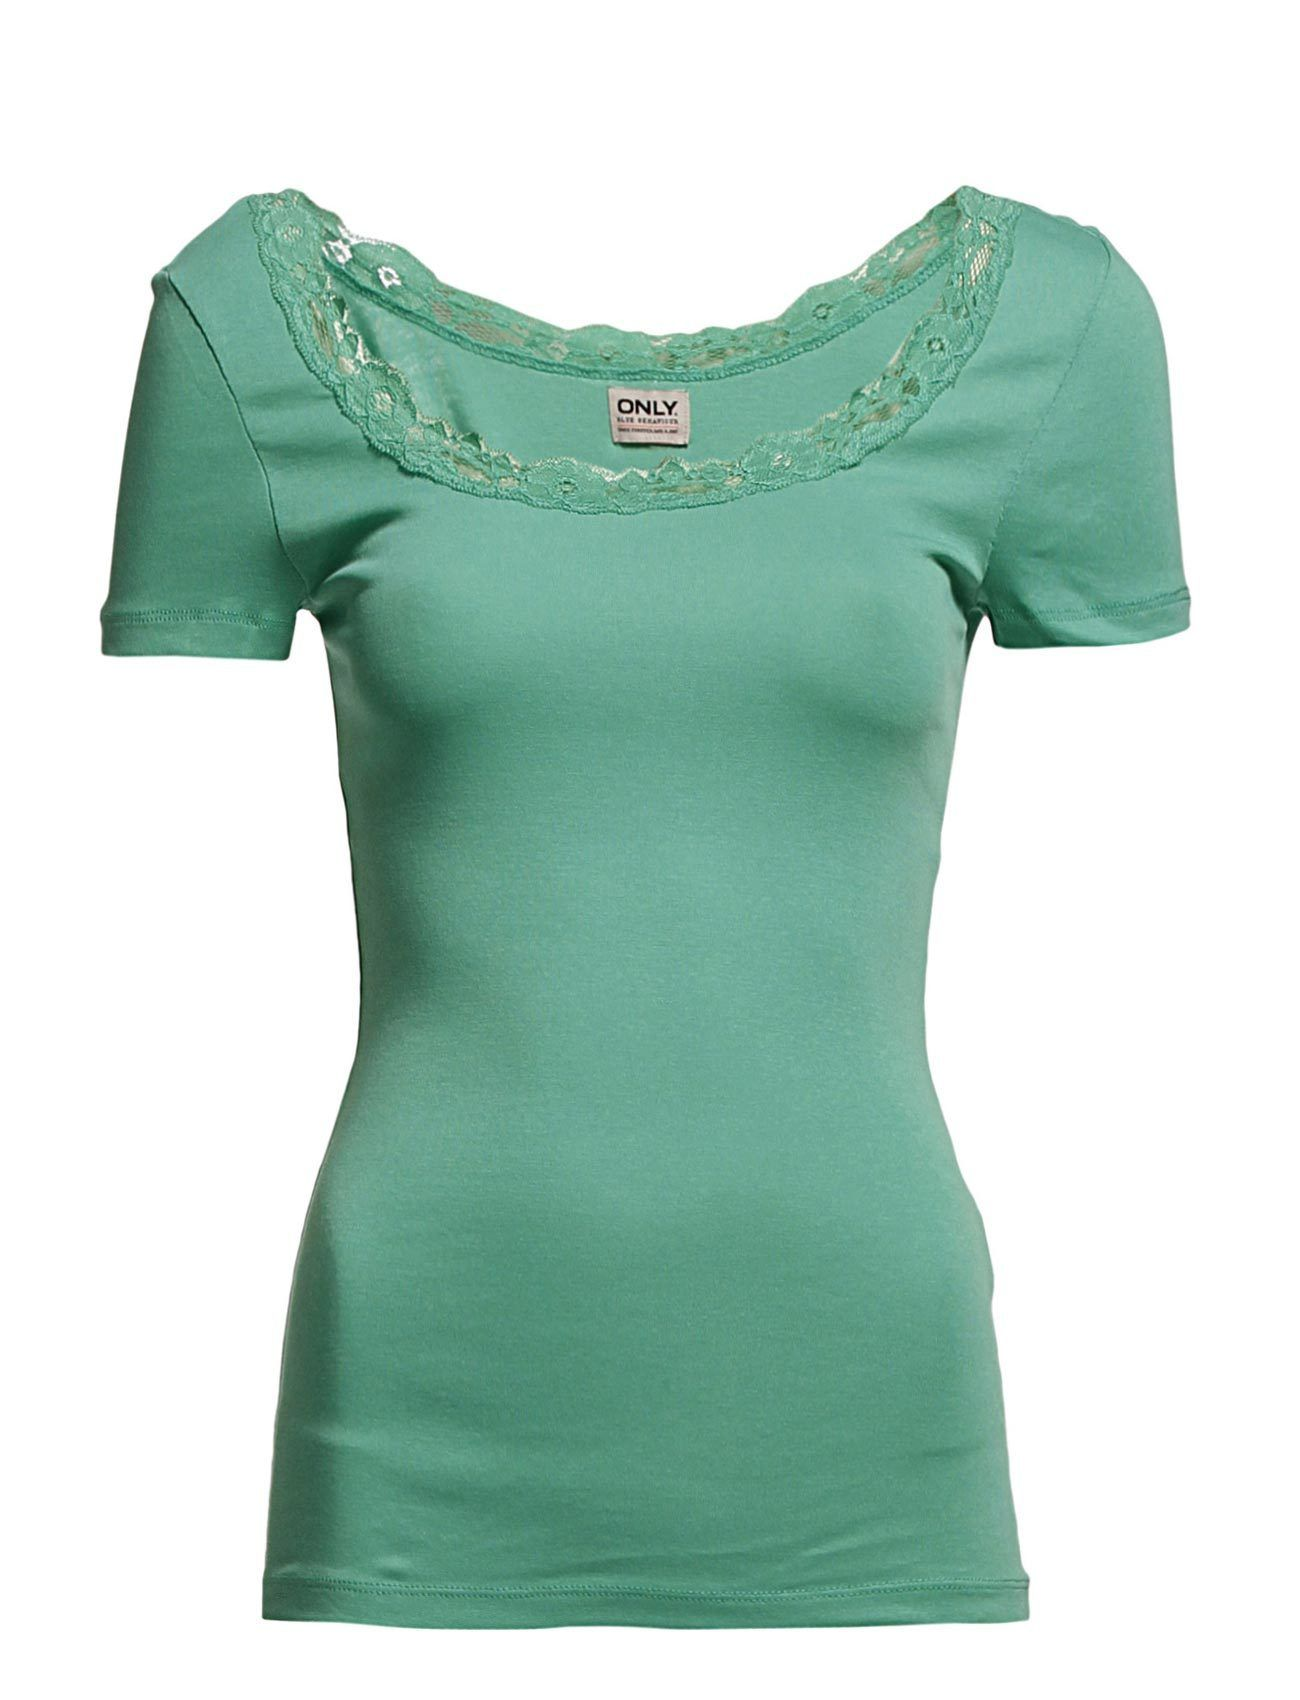 I was a little bit disappointed because in the picture the top seems to be mint green. Anyway it is a lovely top so now I have one green top in my closet! #ONLY - DORA LACE SS TOP JRS